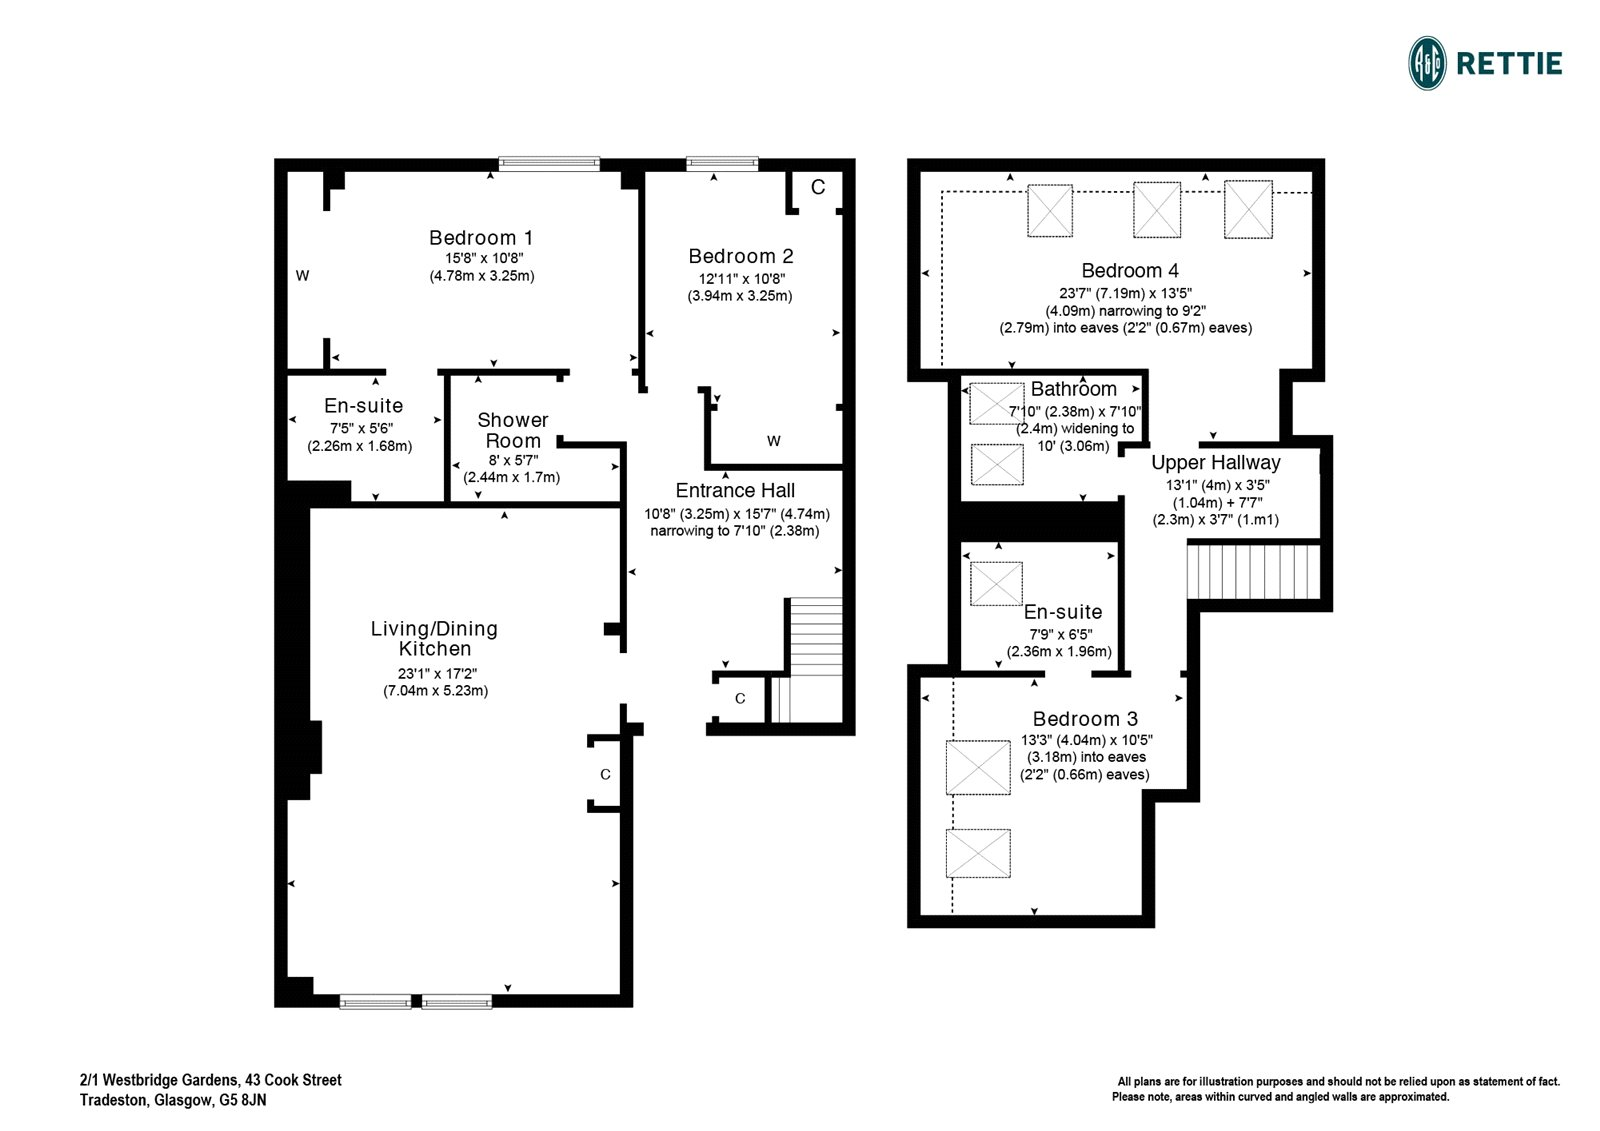 Floorplans for Cook Street, Tradeston, Glasgow, G5